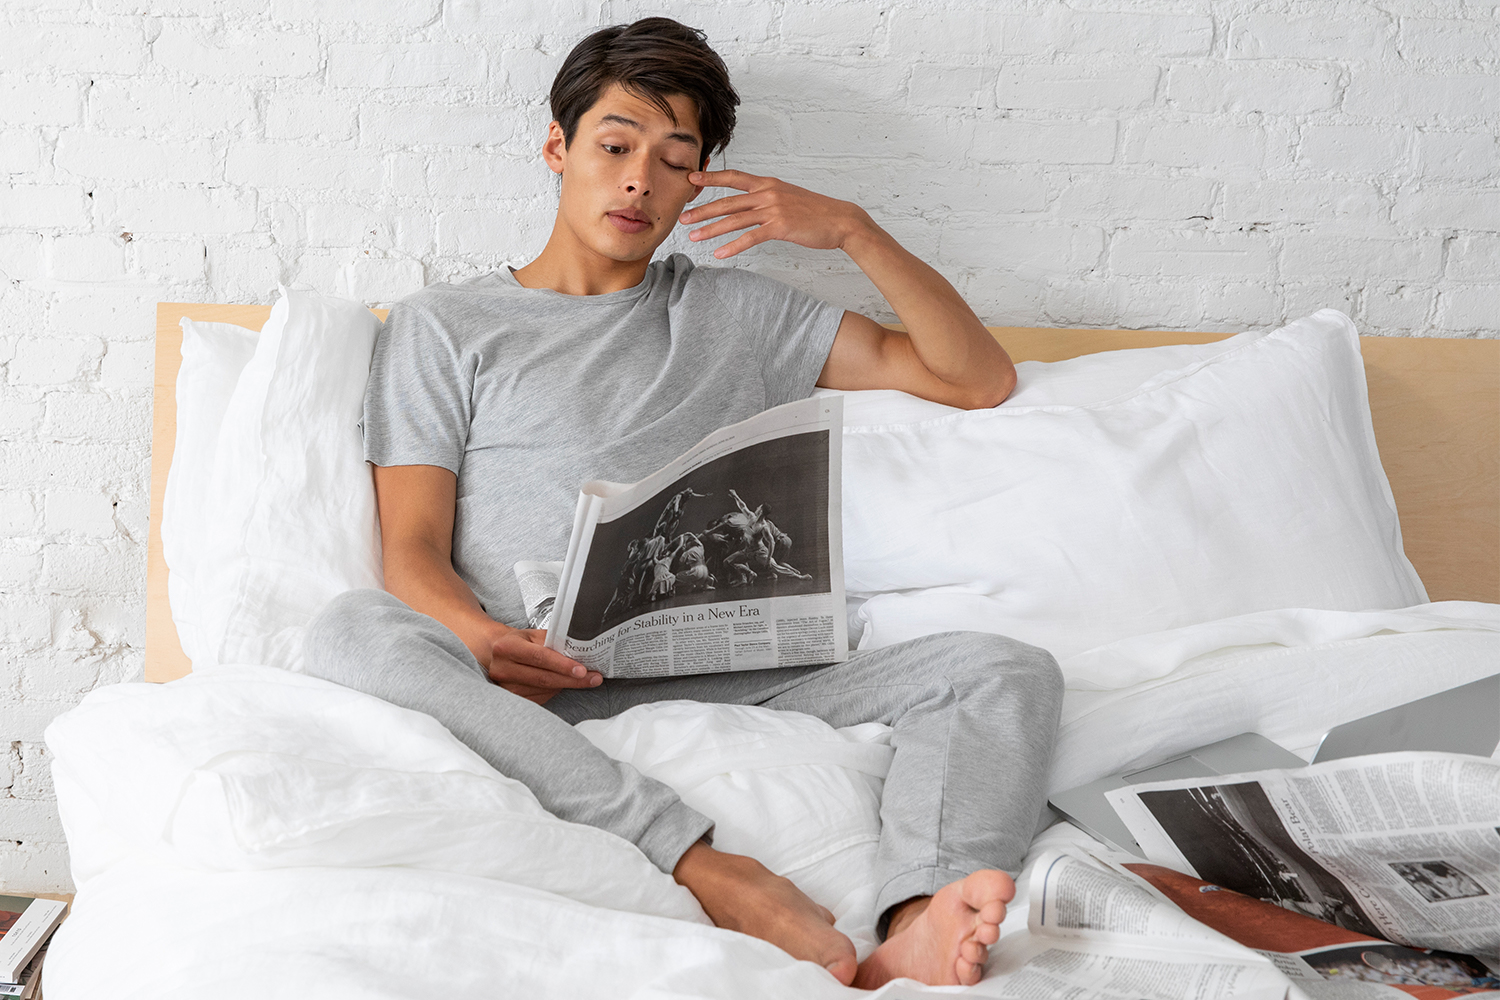 Brooklinen Launches Loungewear Collection With Joggers, Tees and More